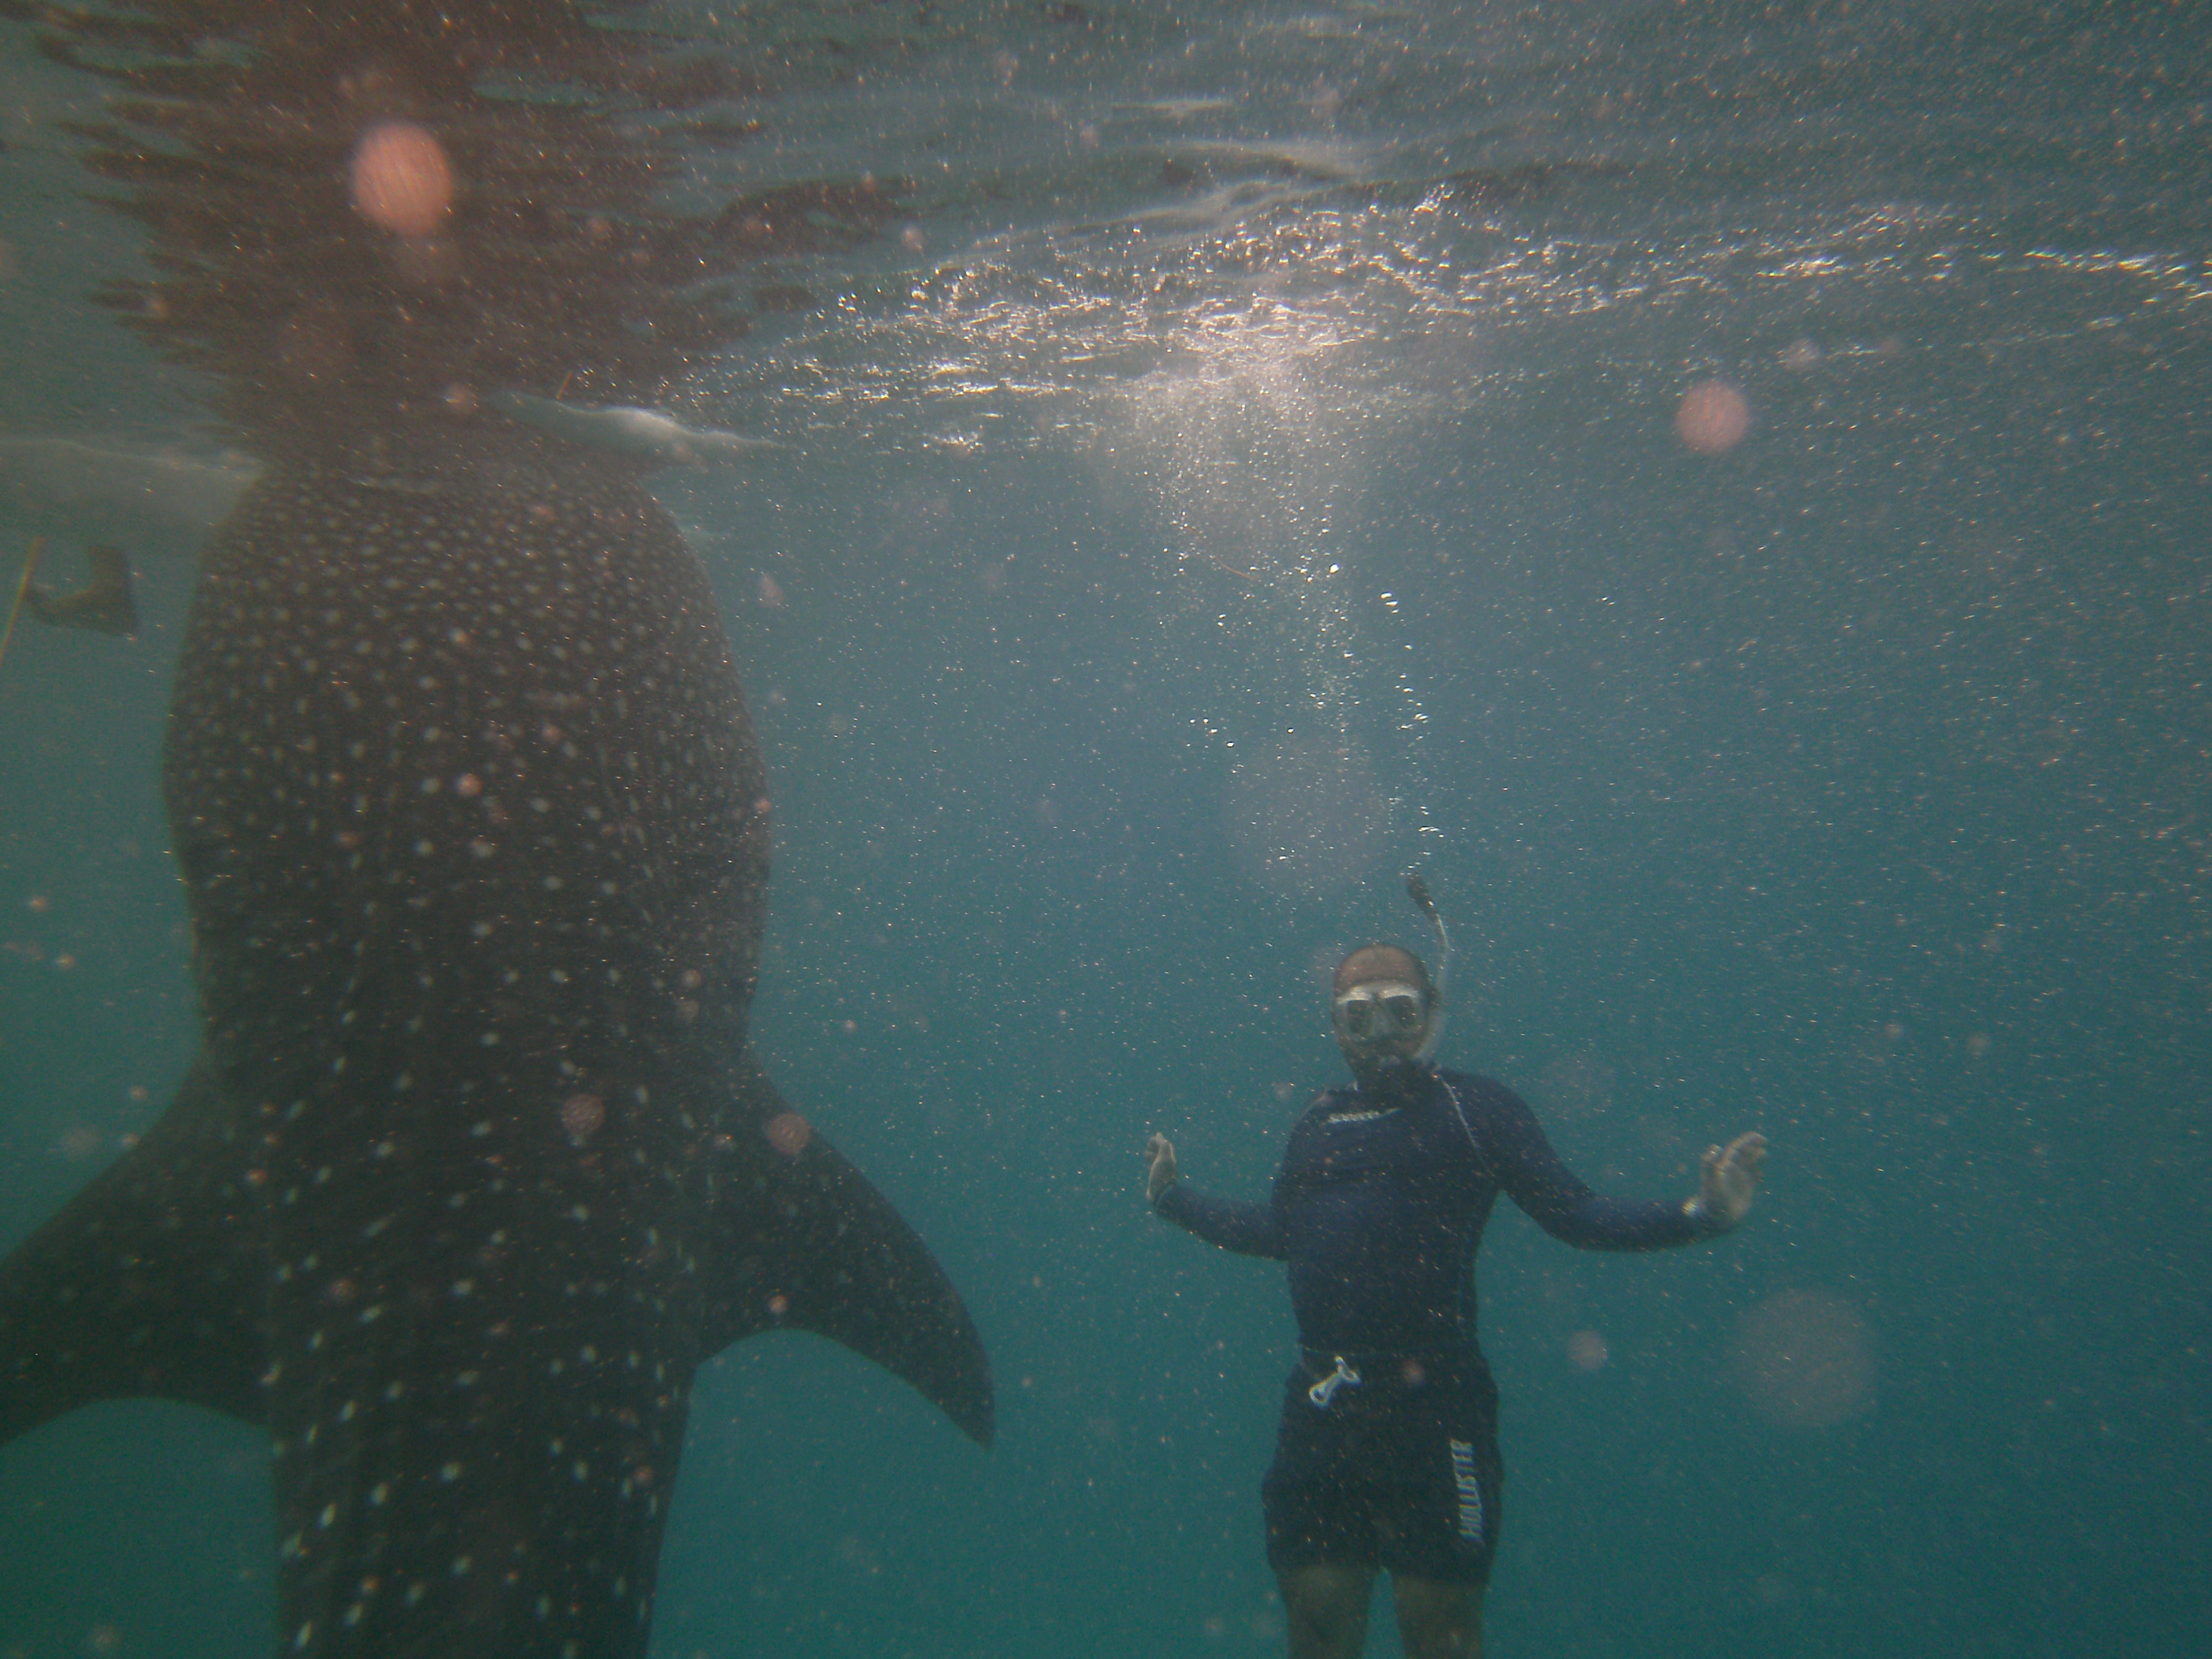 Scuba Snorkeling with 3 whale sharks in Oslob, Cebu Philippines.